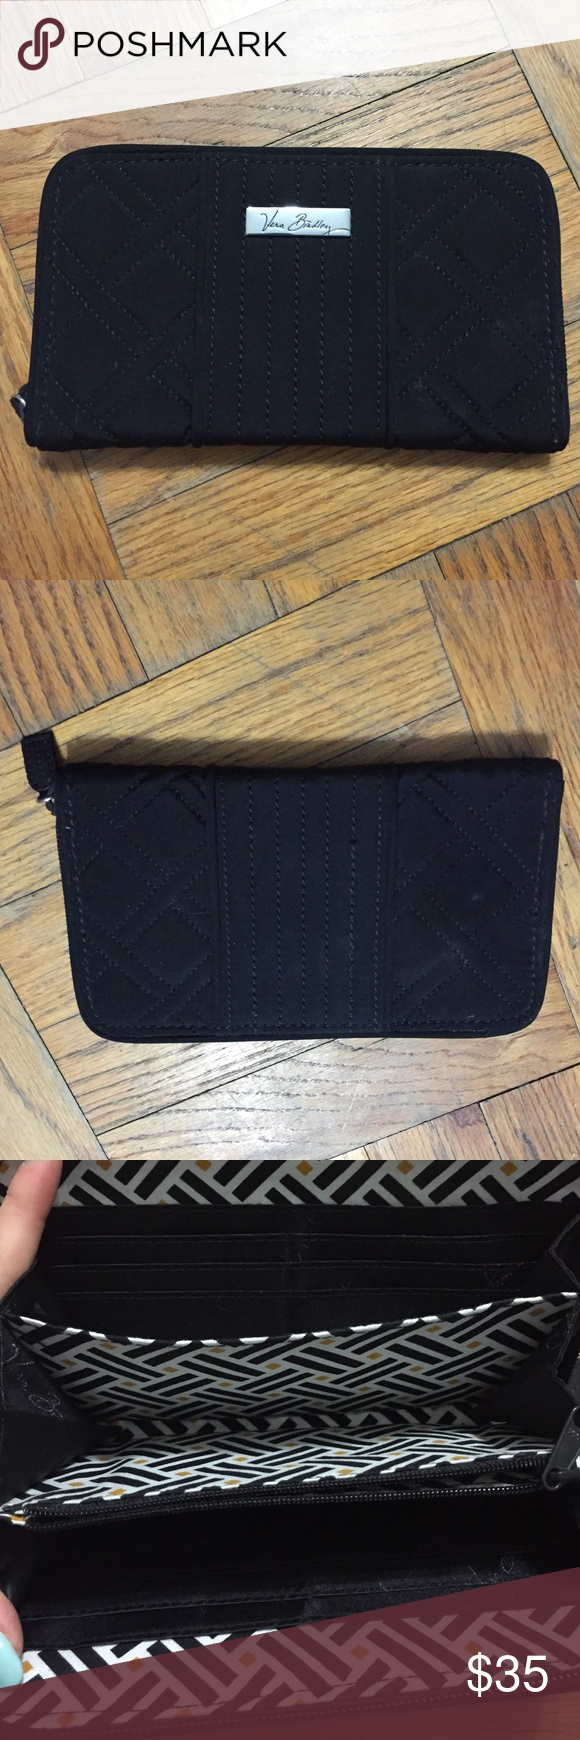 Large Zip-Around Wallet in Classic Black Large Zip-Around Wallet in Classic Black Vera Bradley Bags Wallets